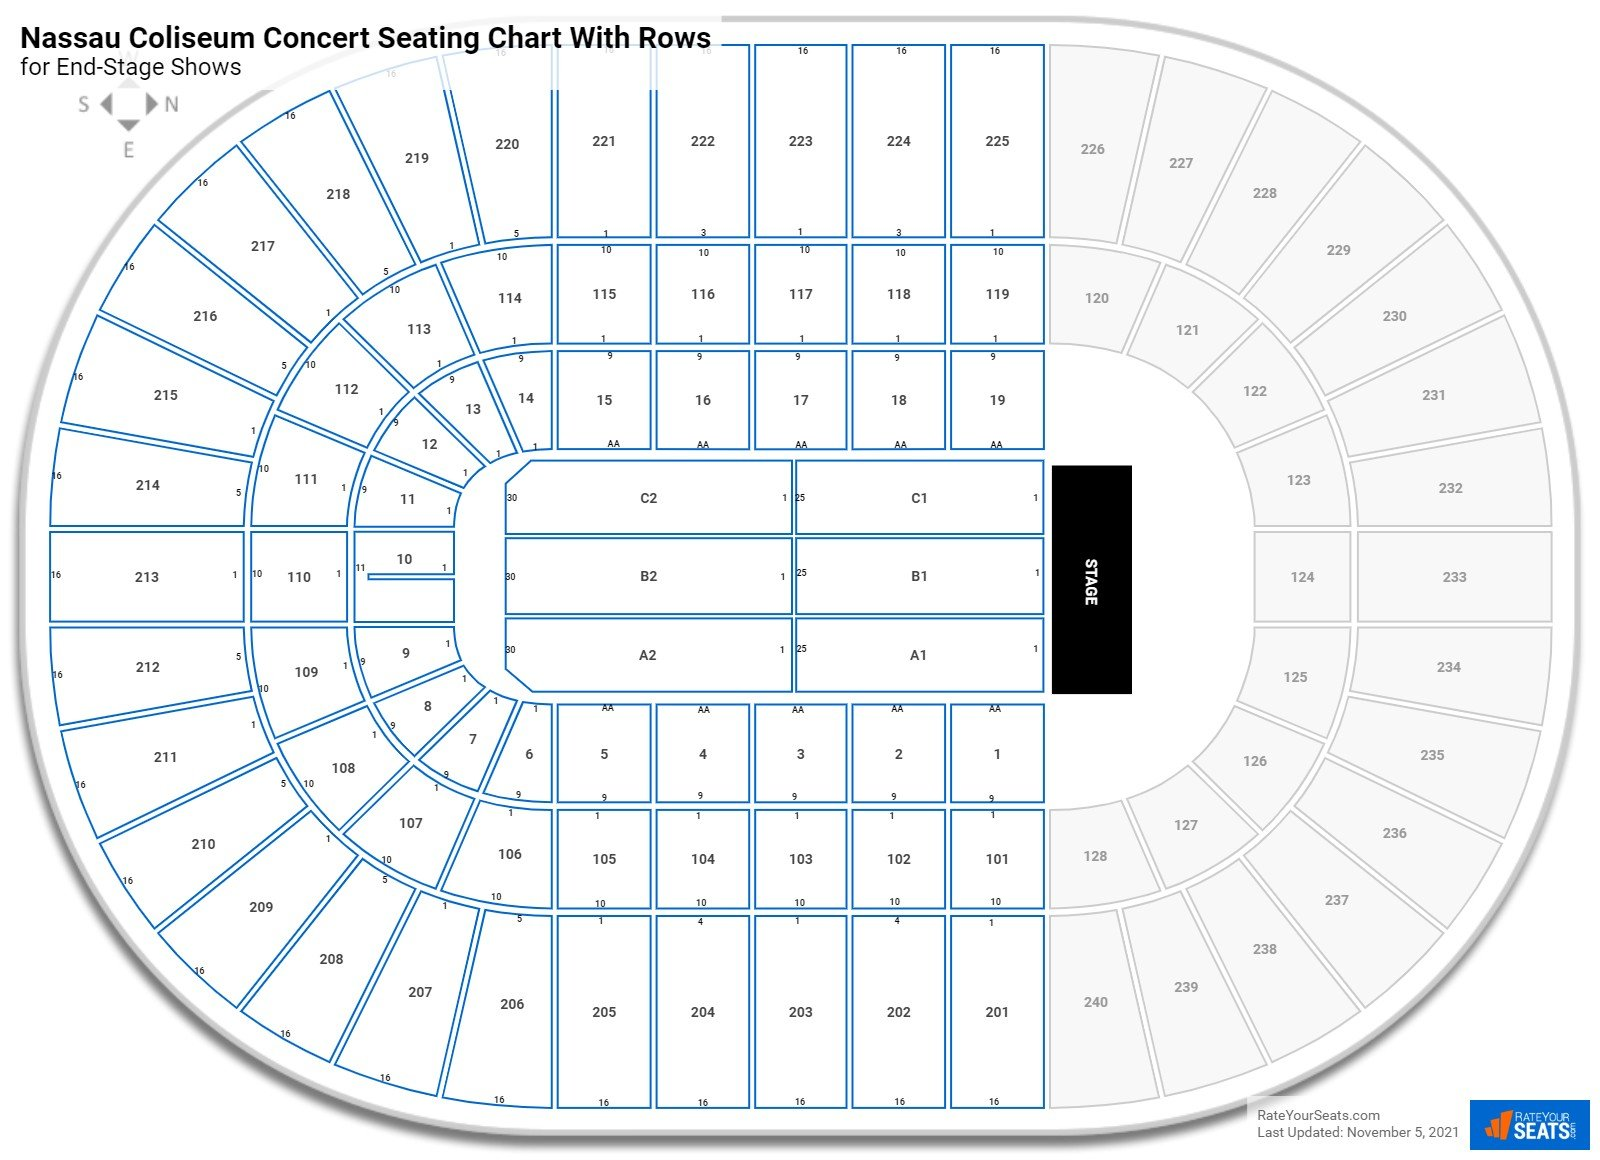 Nassau Coliseum seating chart with rows concert